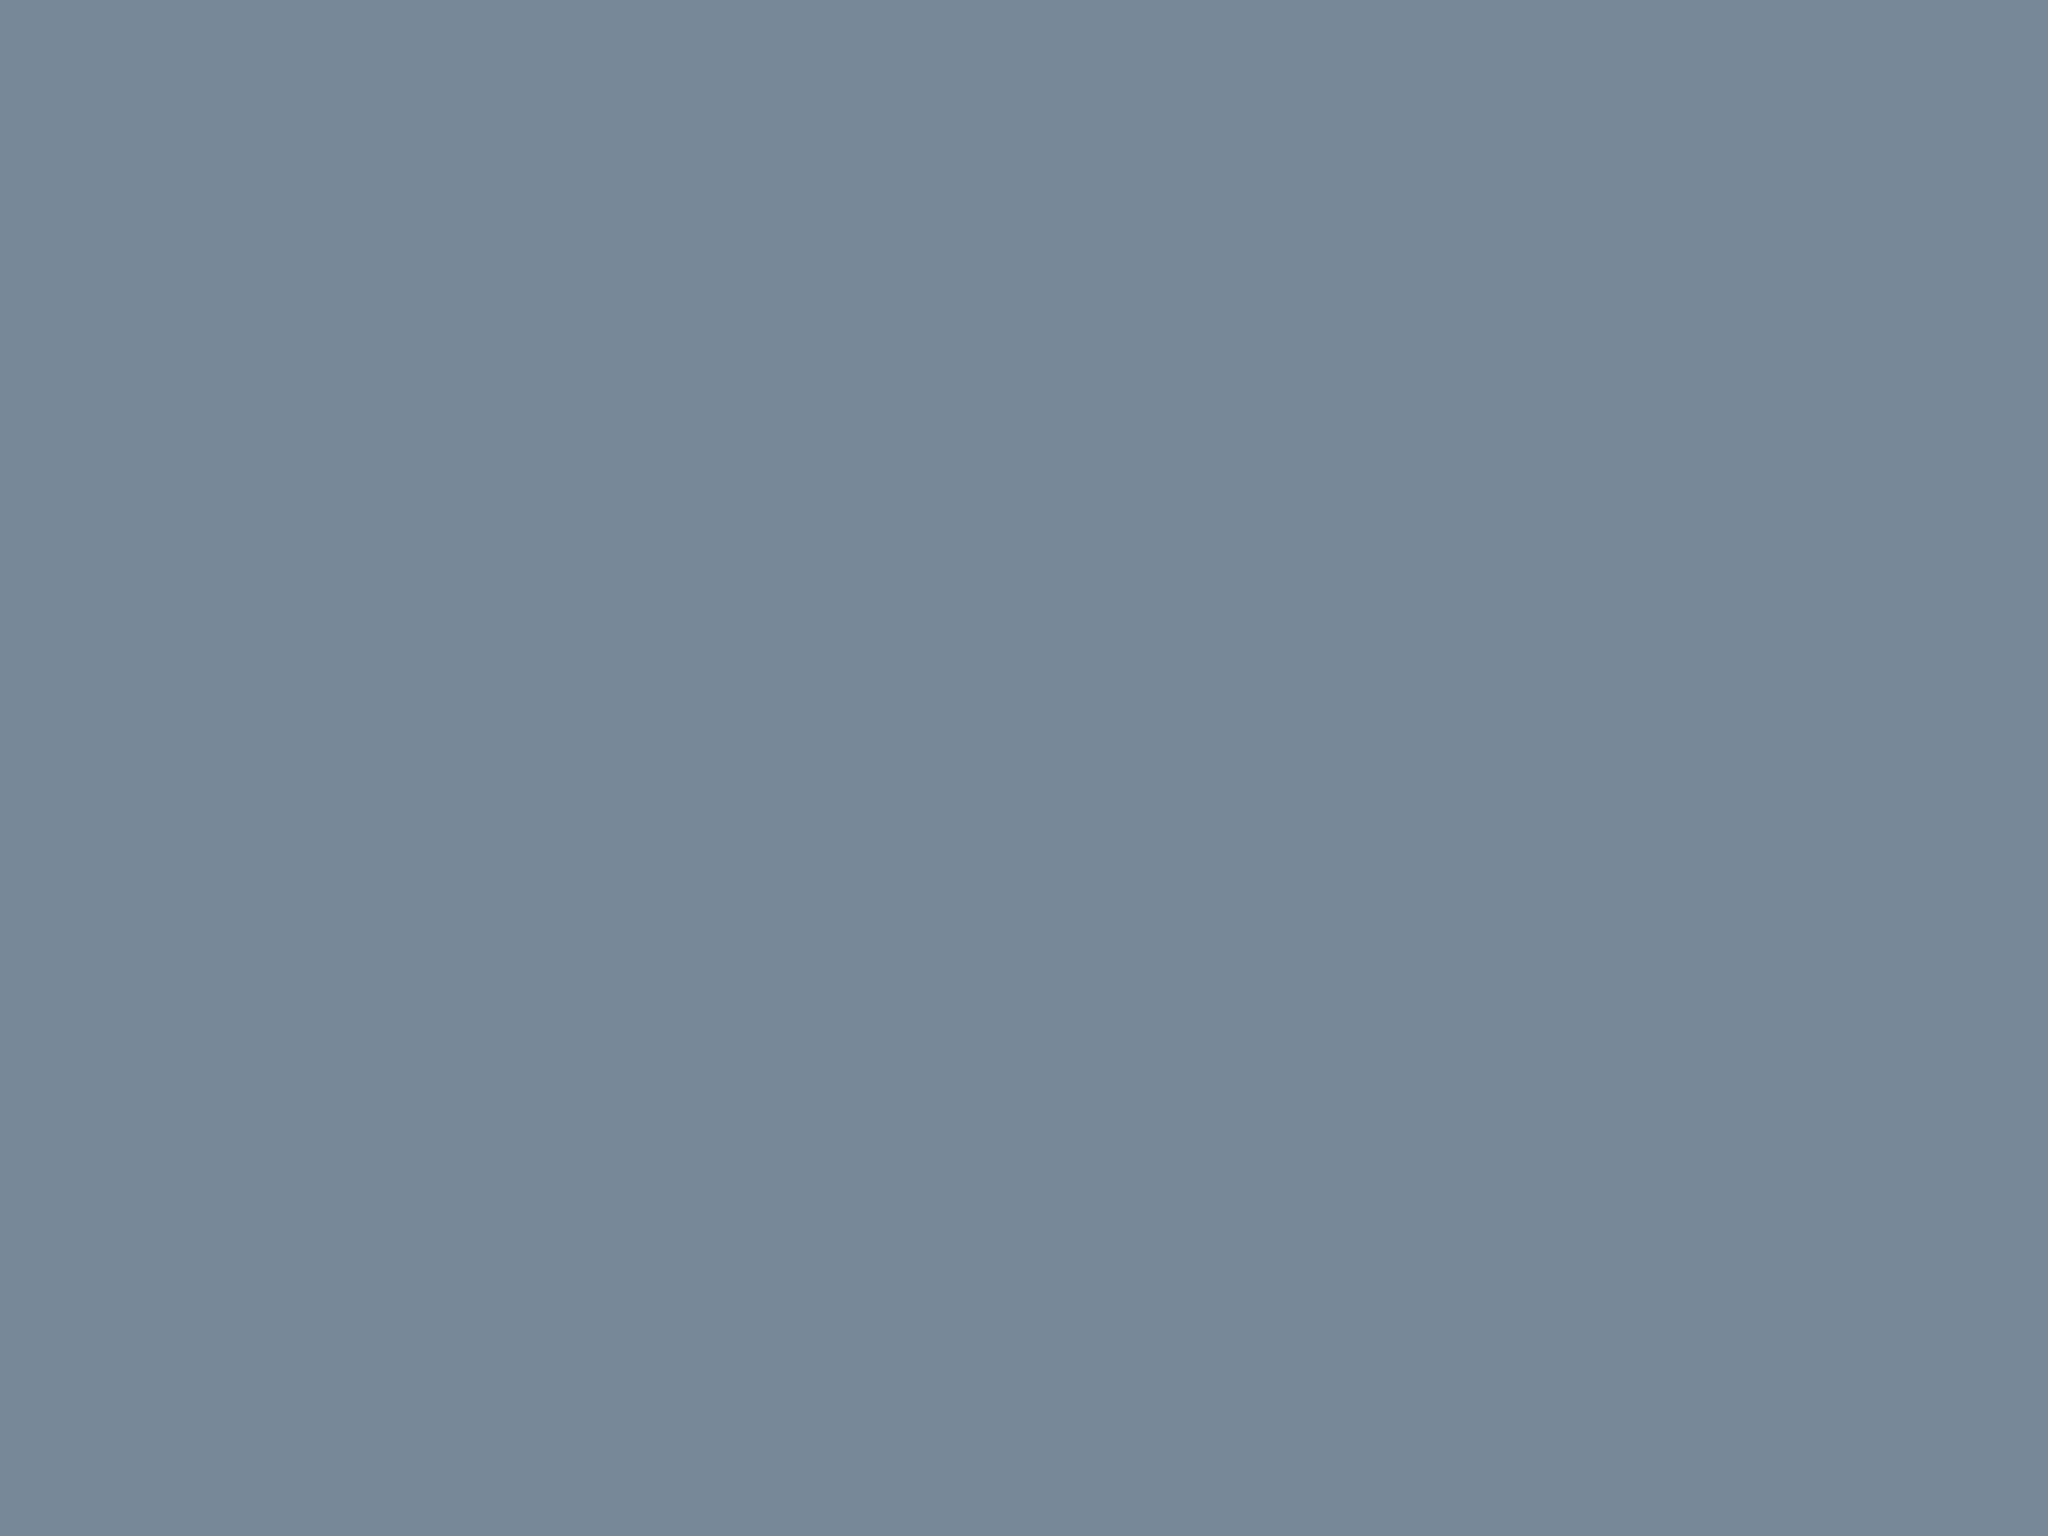 2048x1536 Light Slate Gray Solid Color Background